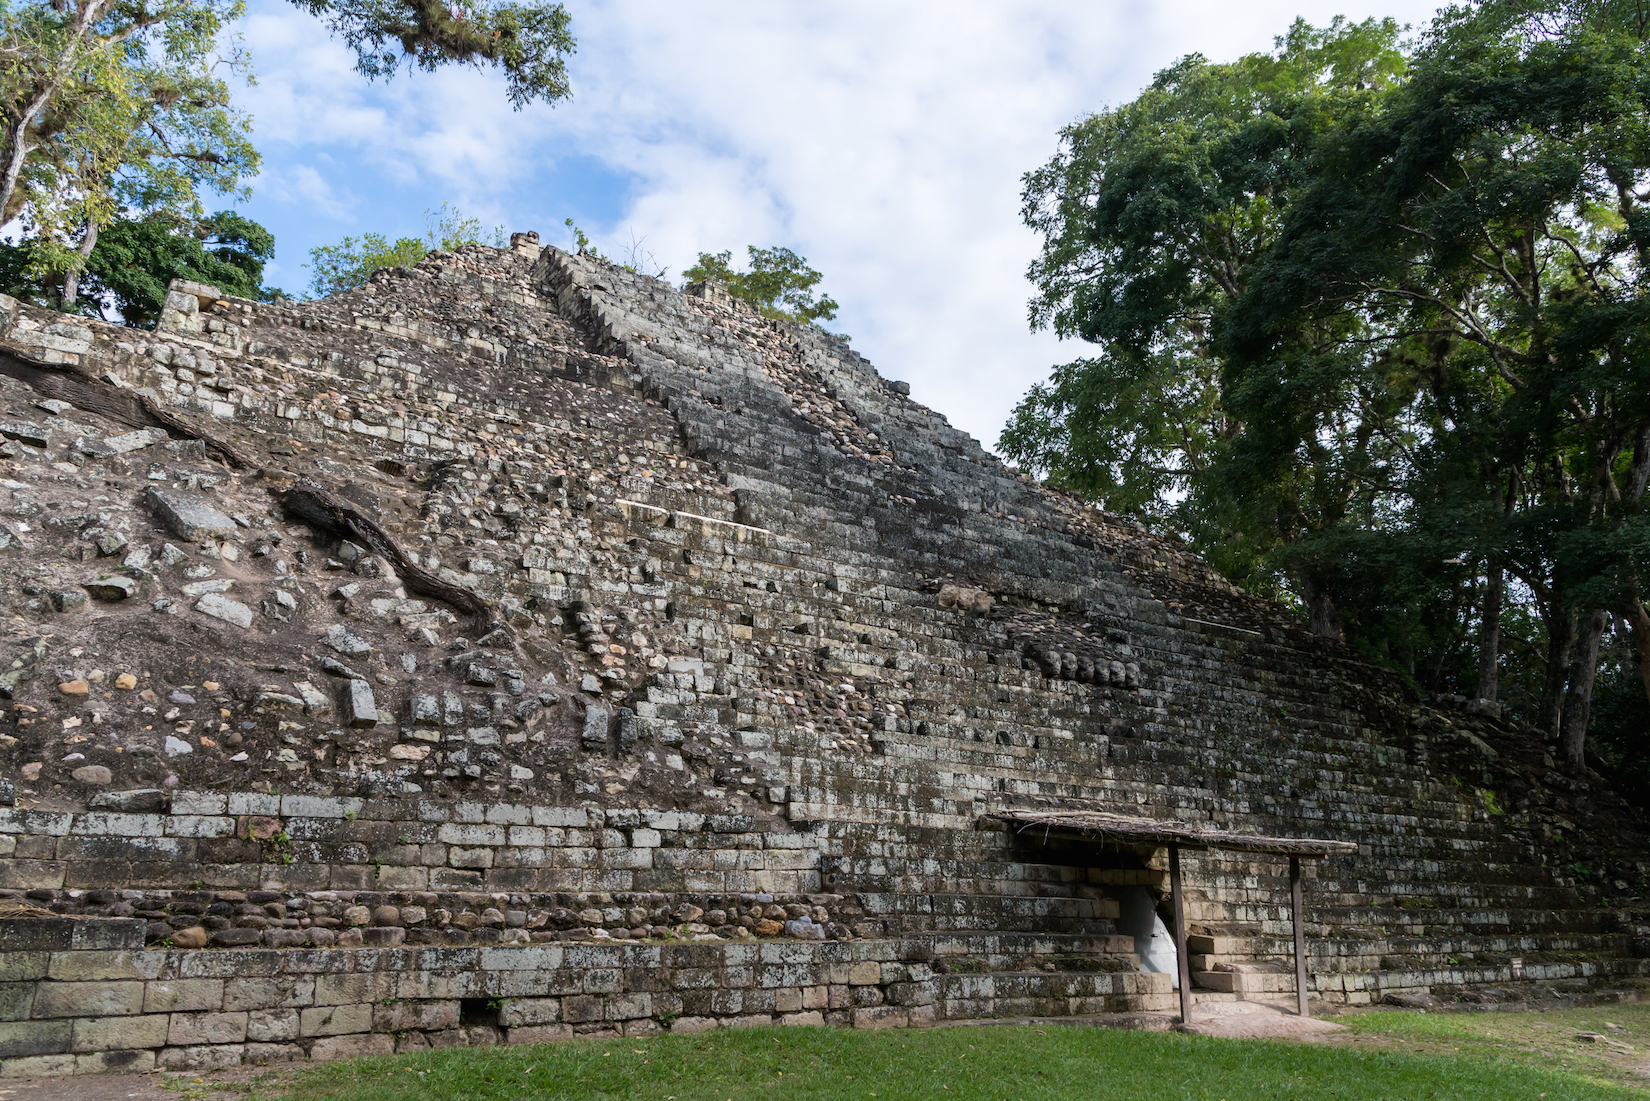 Jaguar Remains Offer New Evidence of Incredible Maya Trade Networks